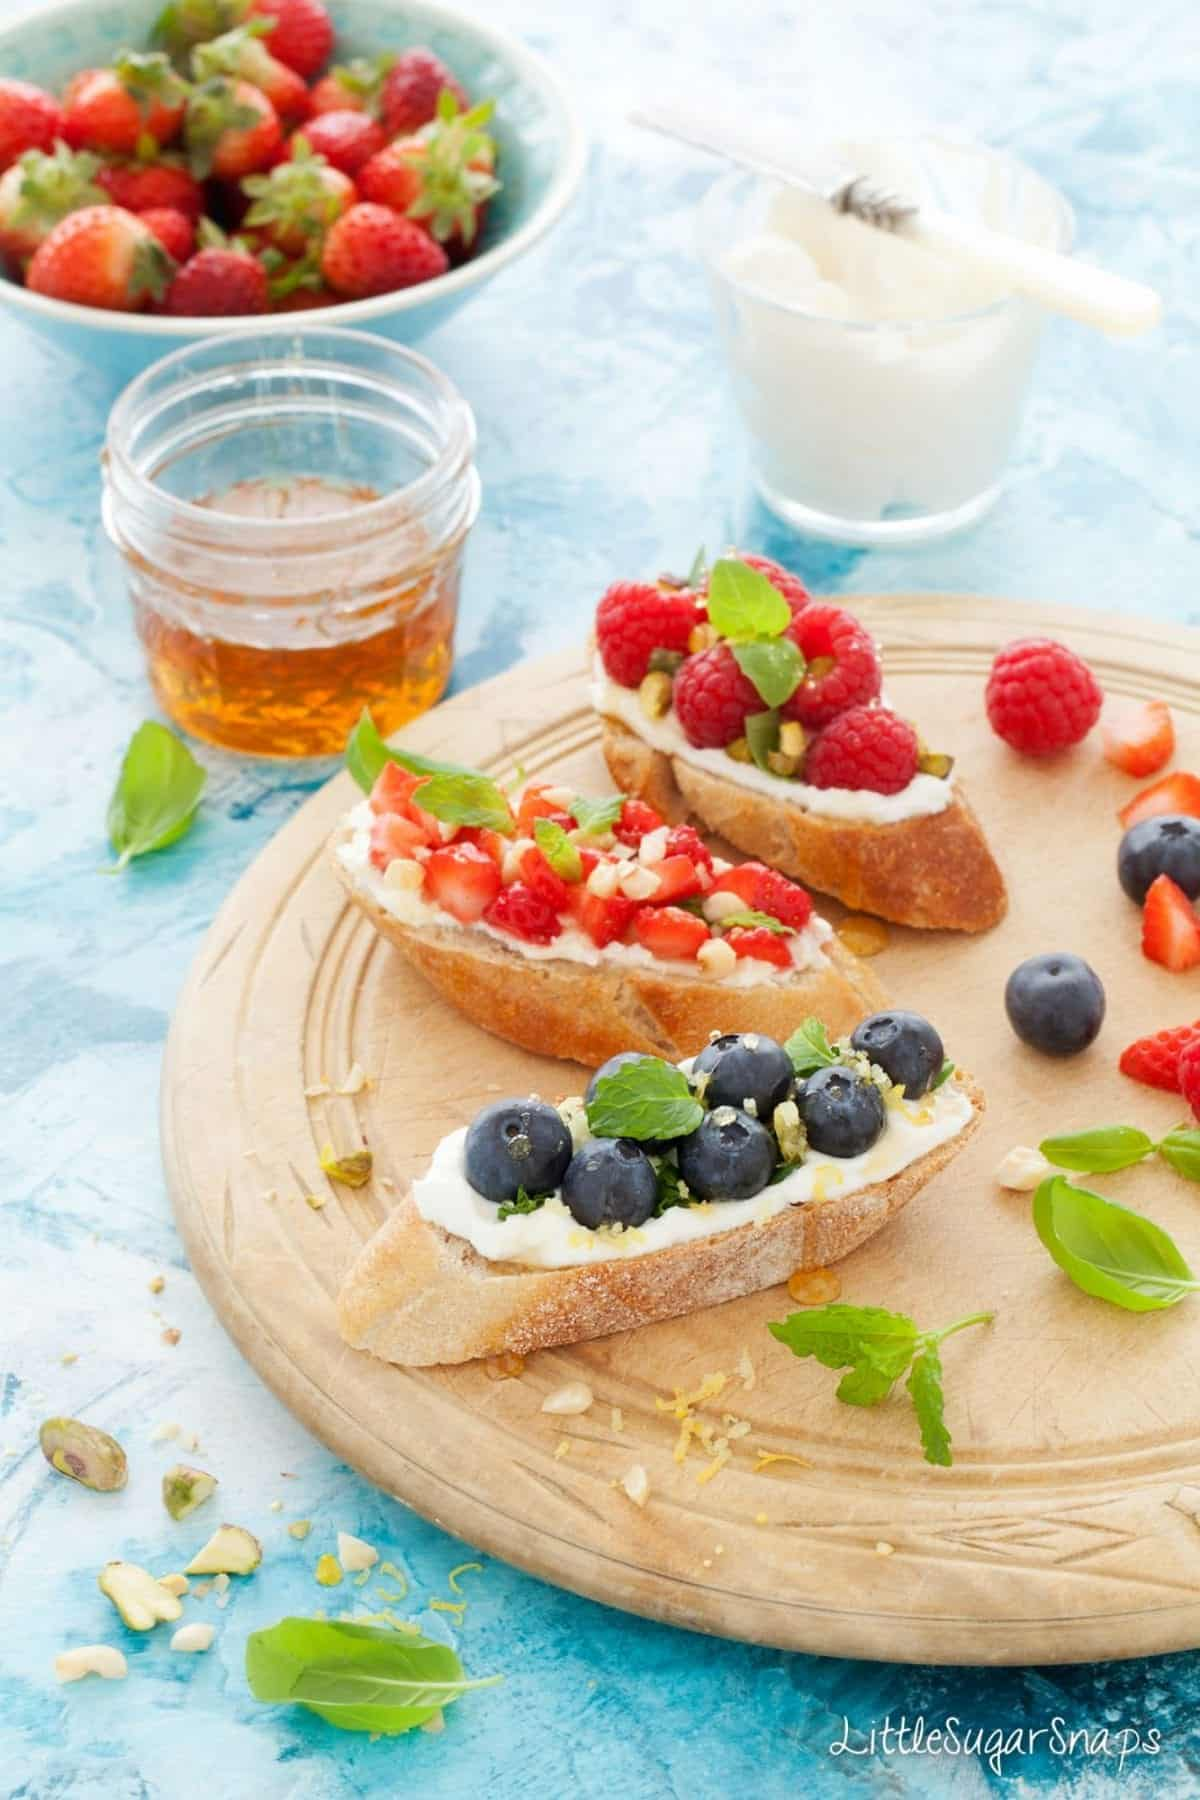 Mixed Berries on Toast with cream cheese and fresh fruit